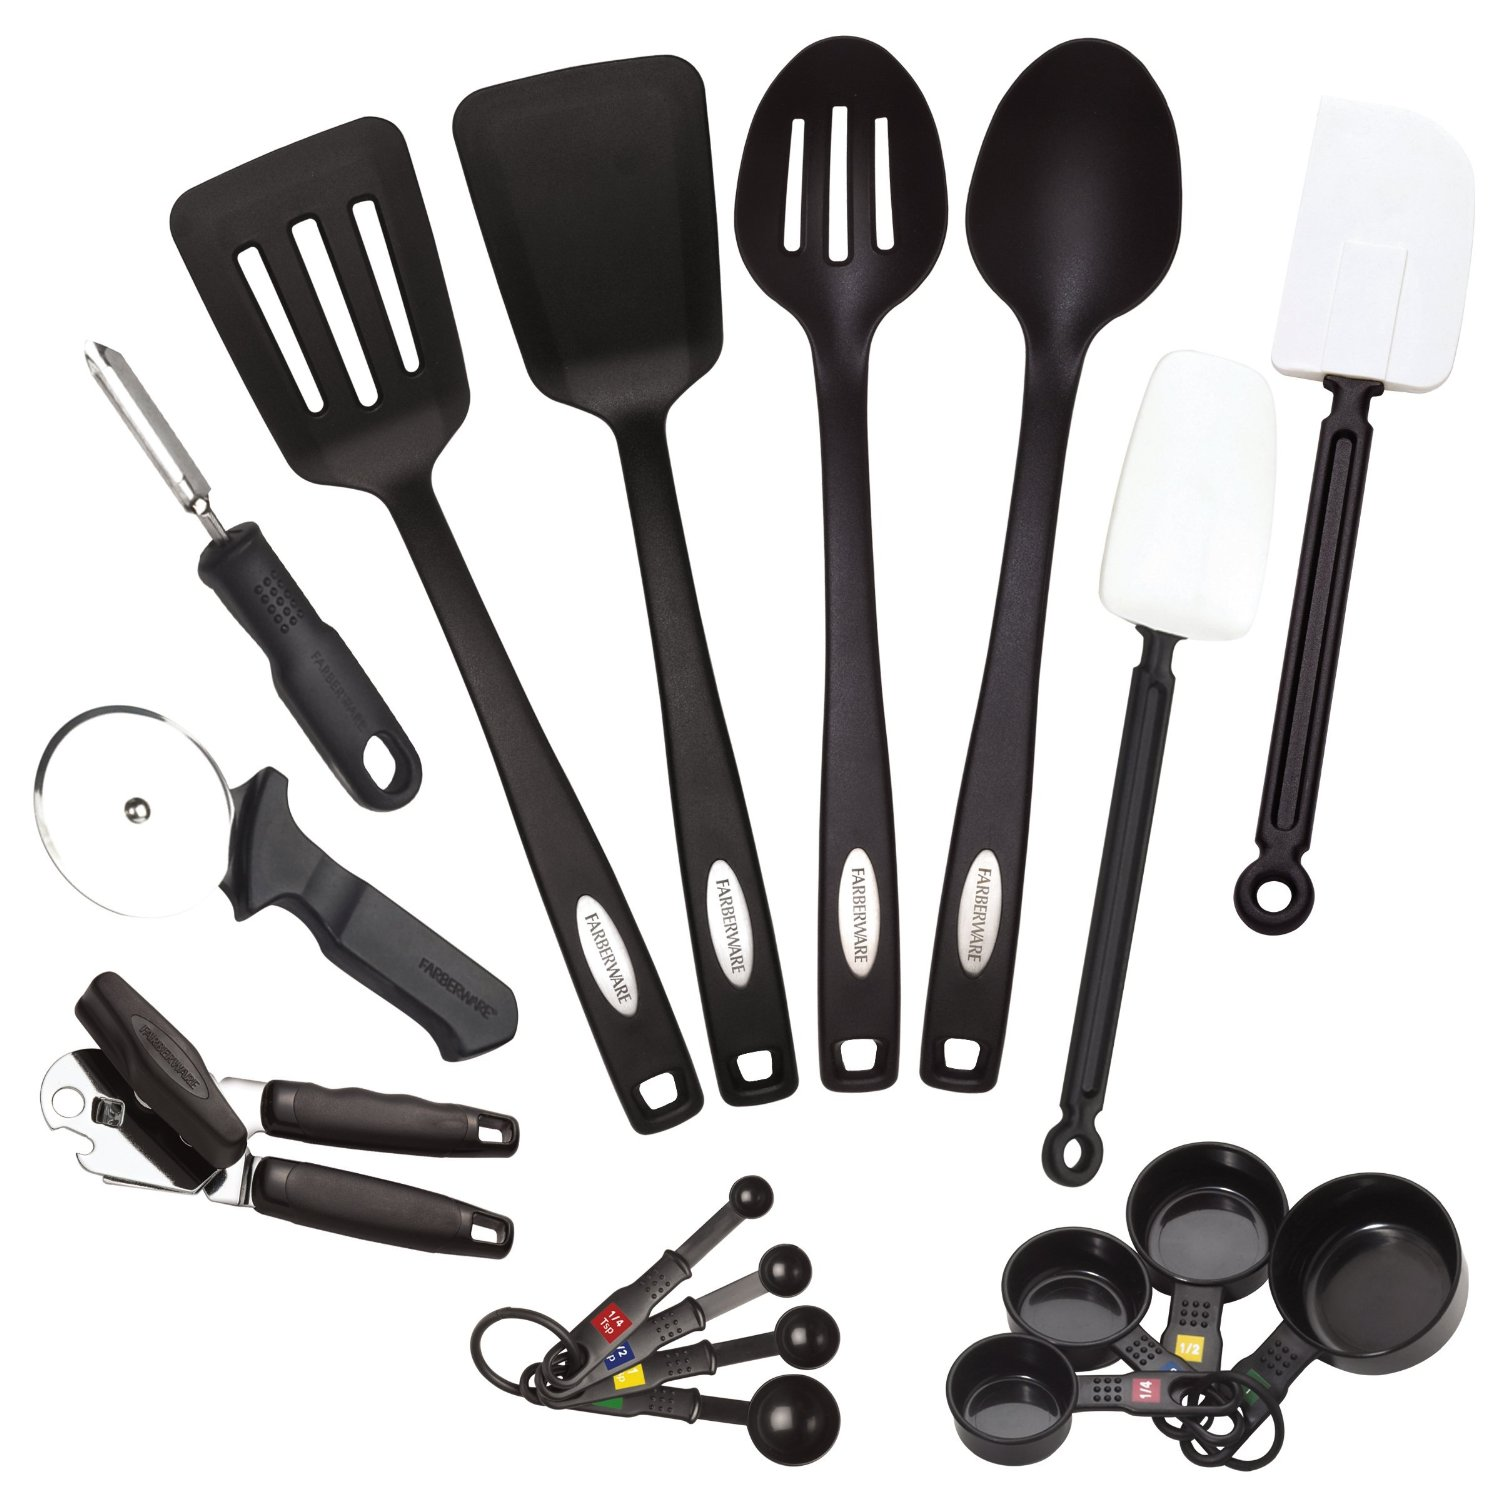 Top 10 Best Home Utensil Set Review in 2018 - Top 10 Review Of